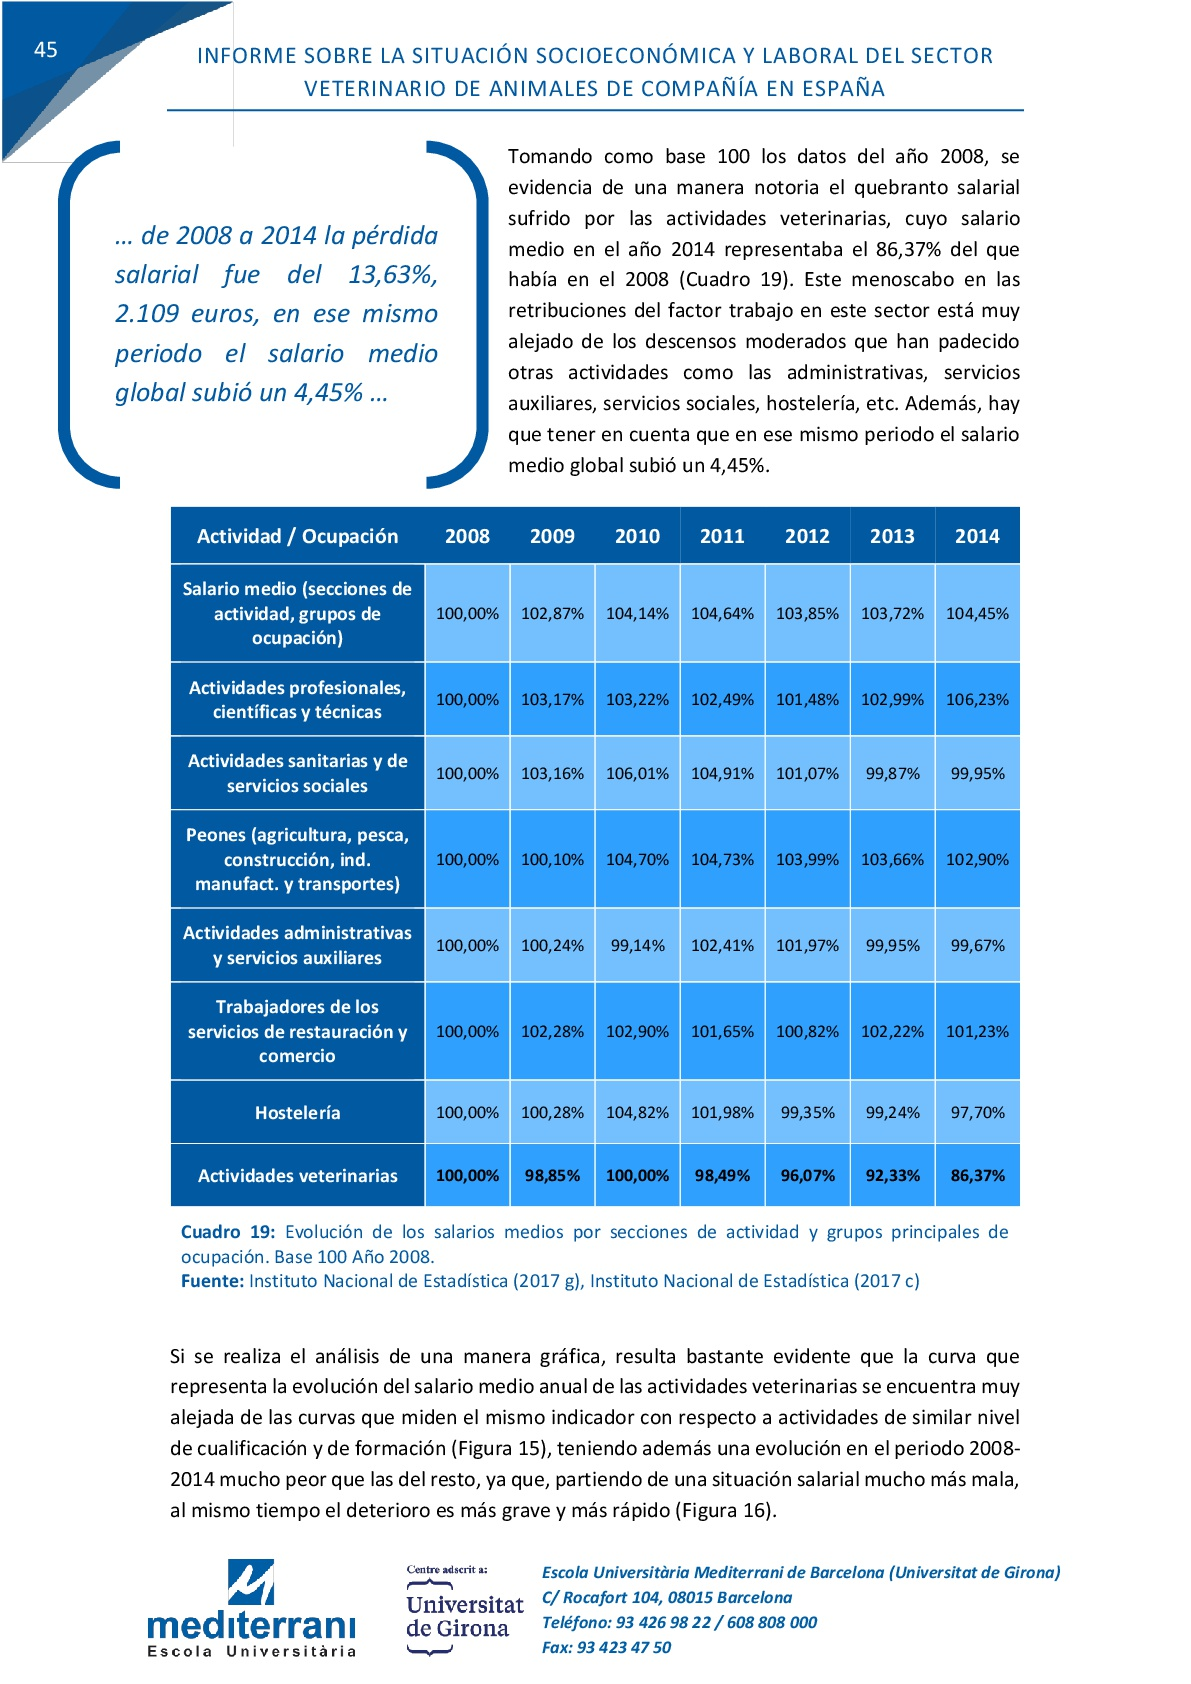 Informe-Veterinario-2017-+-informe-legal-2015-(3)-050